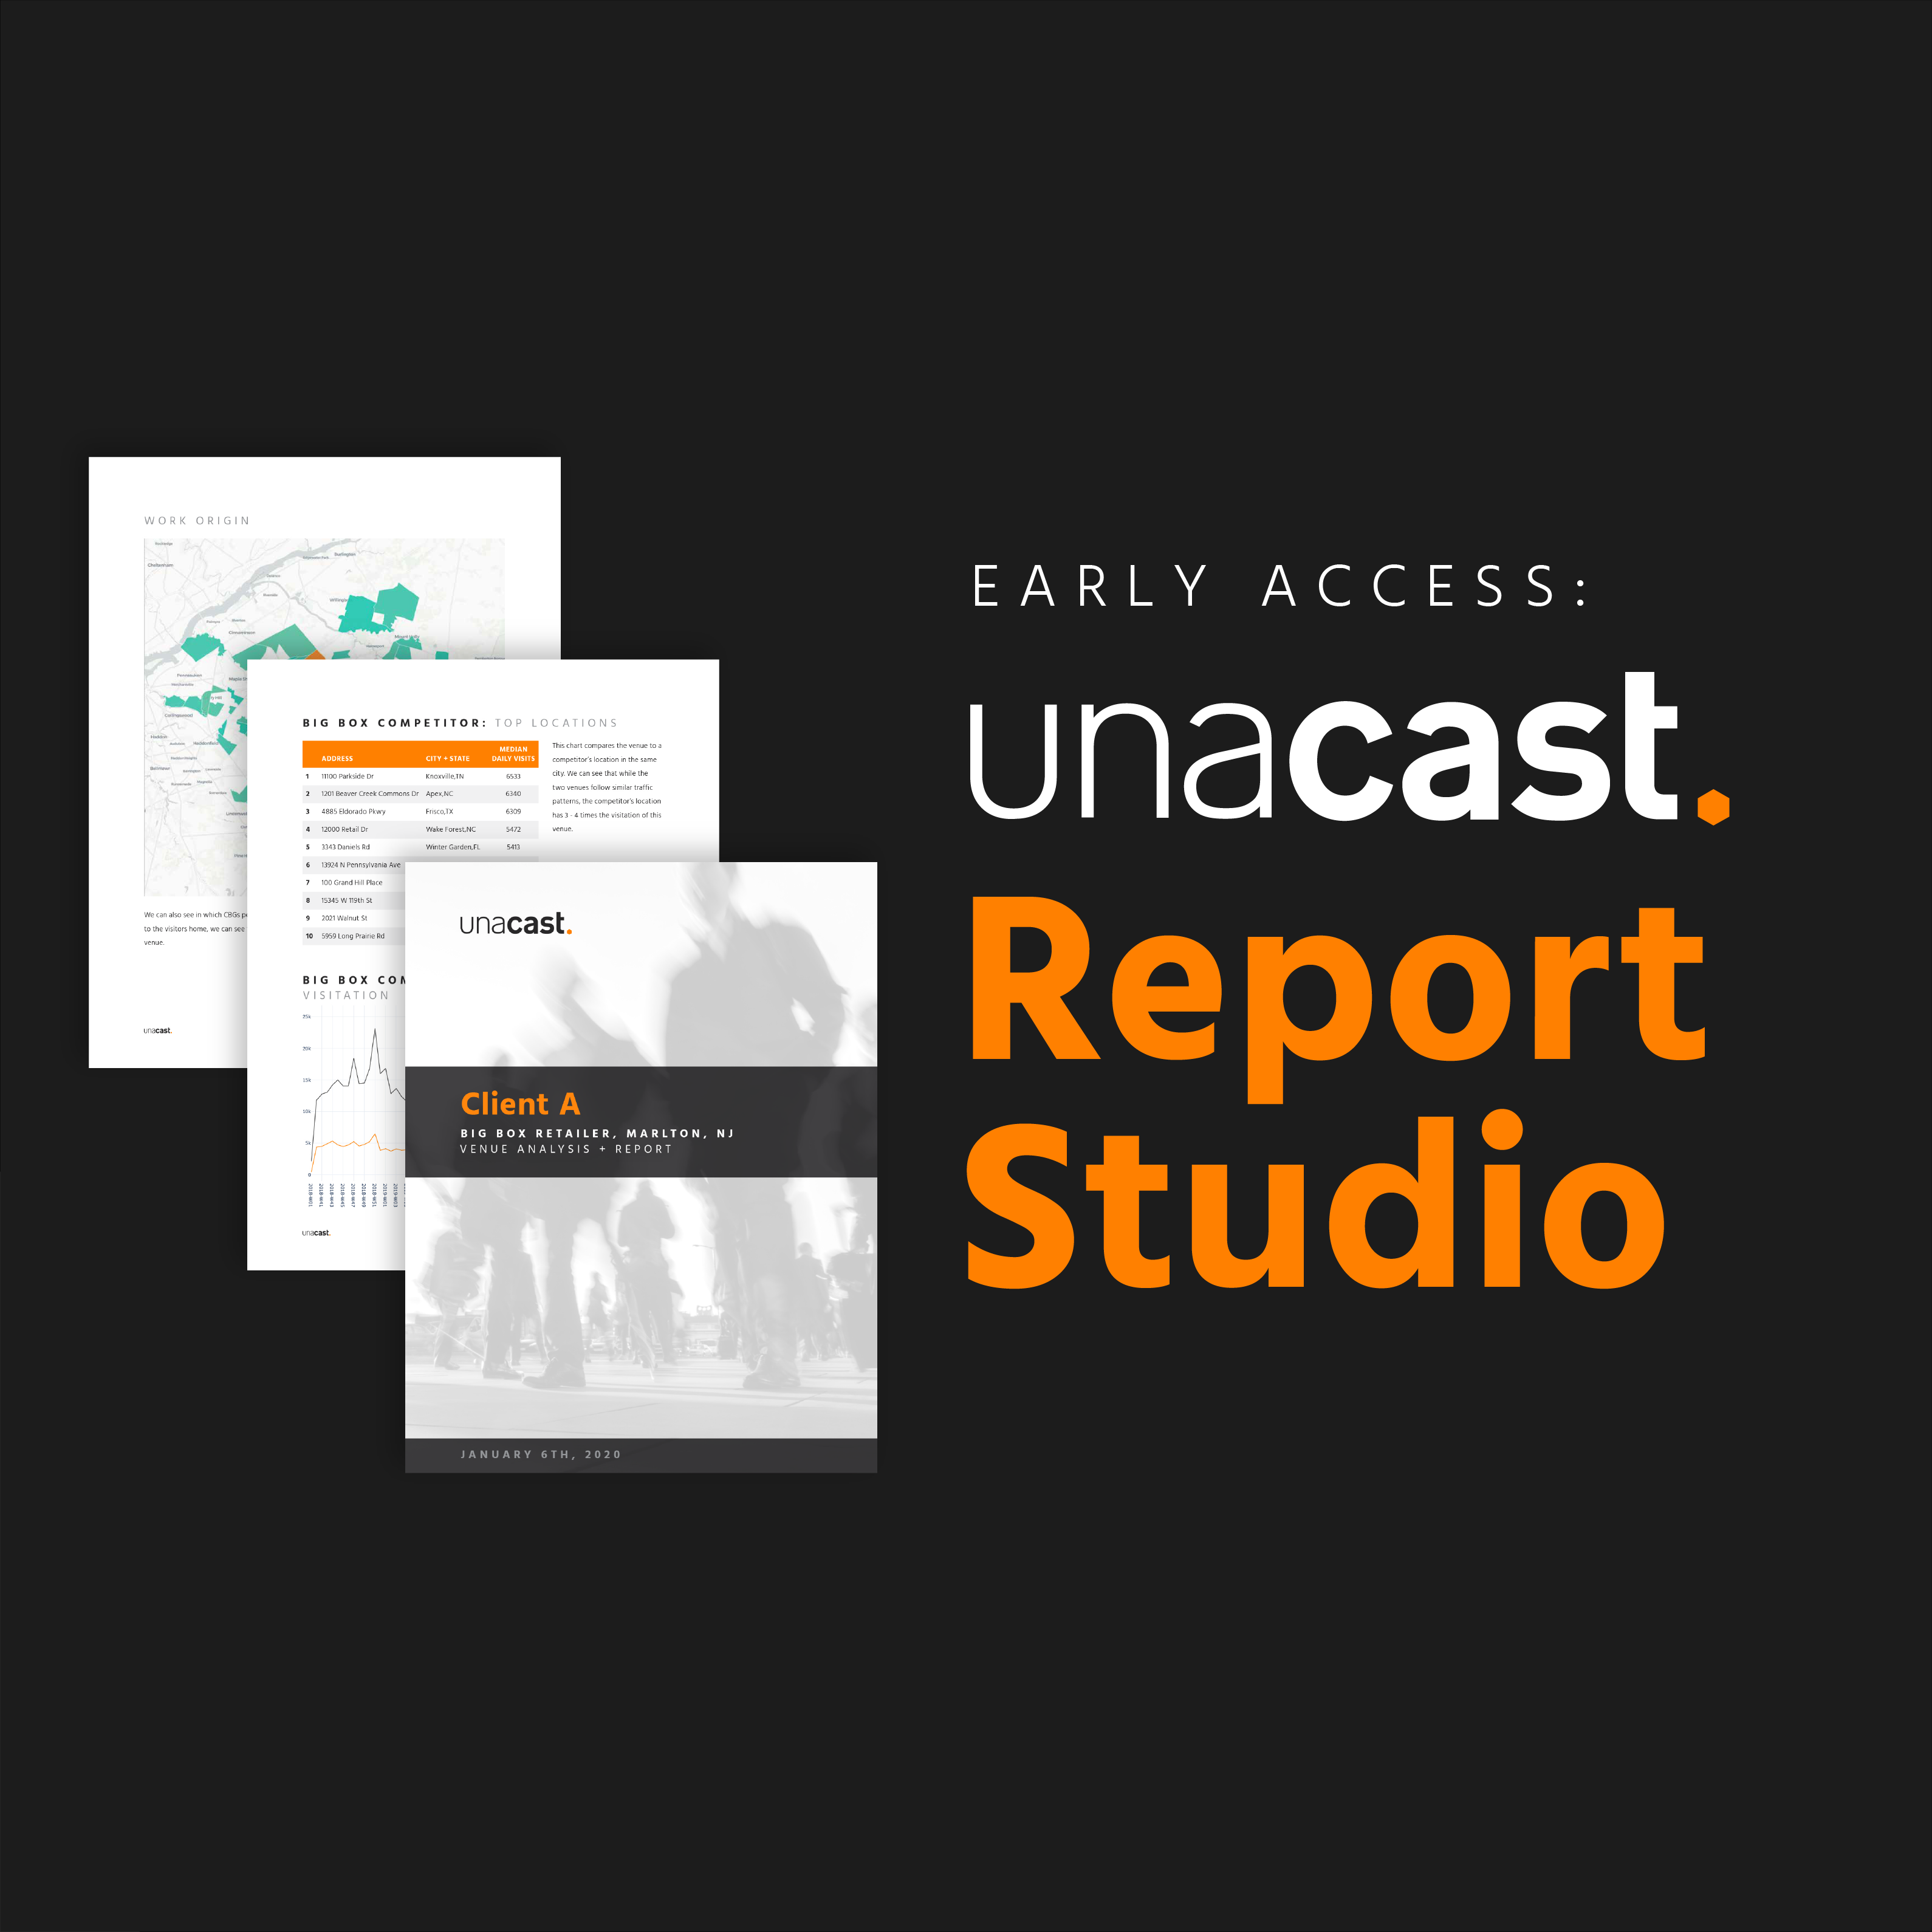 Early Access: Unacast Report Studio